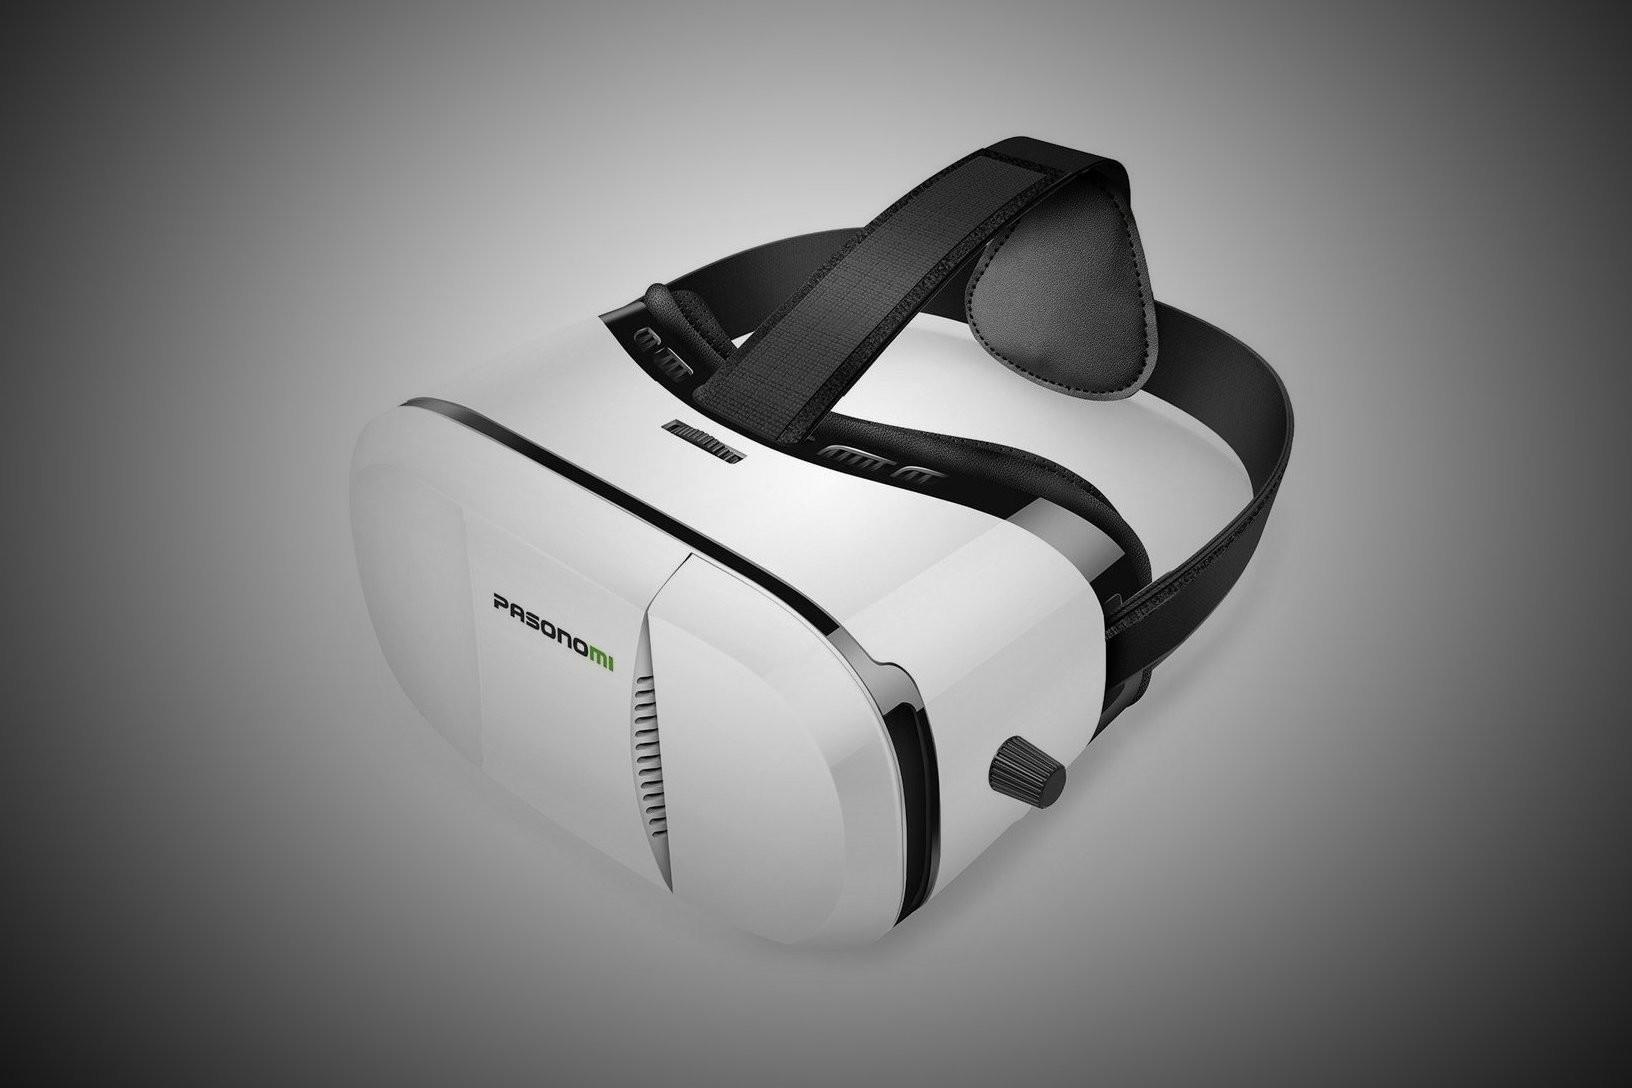 Immerse yourself in virtual reality with Pasonomi's VR